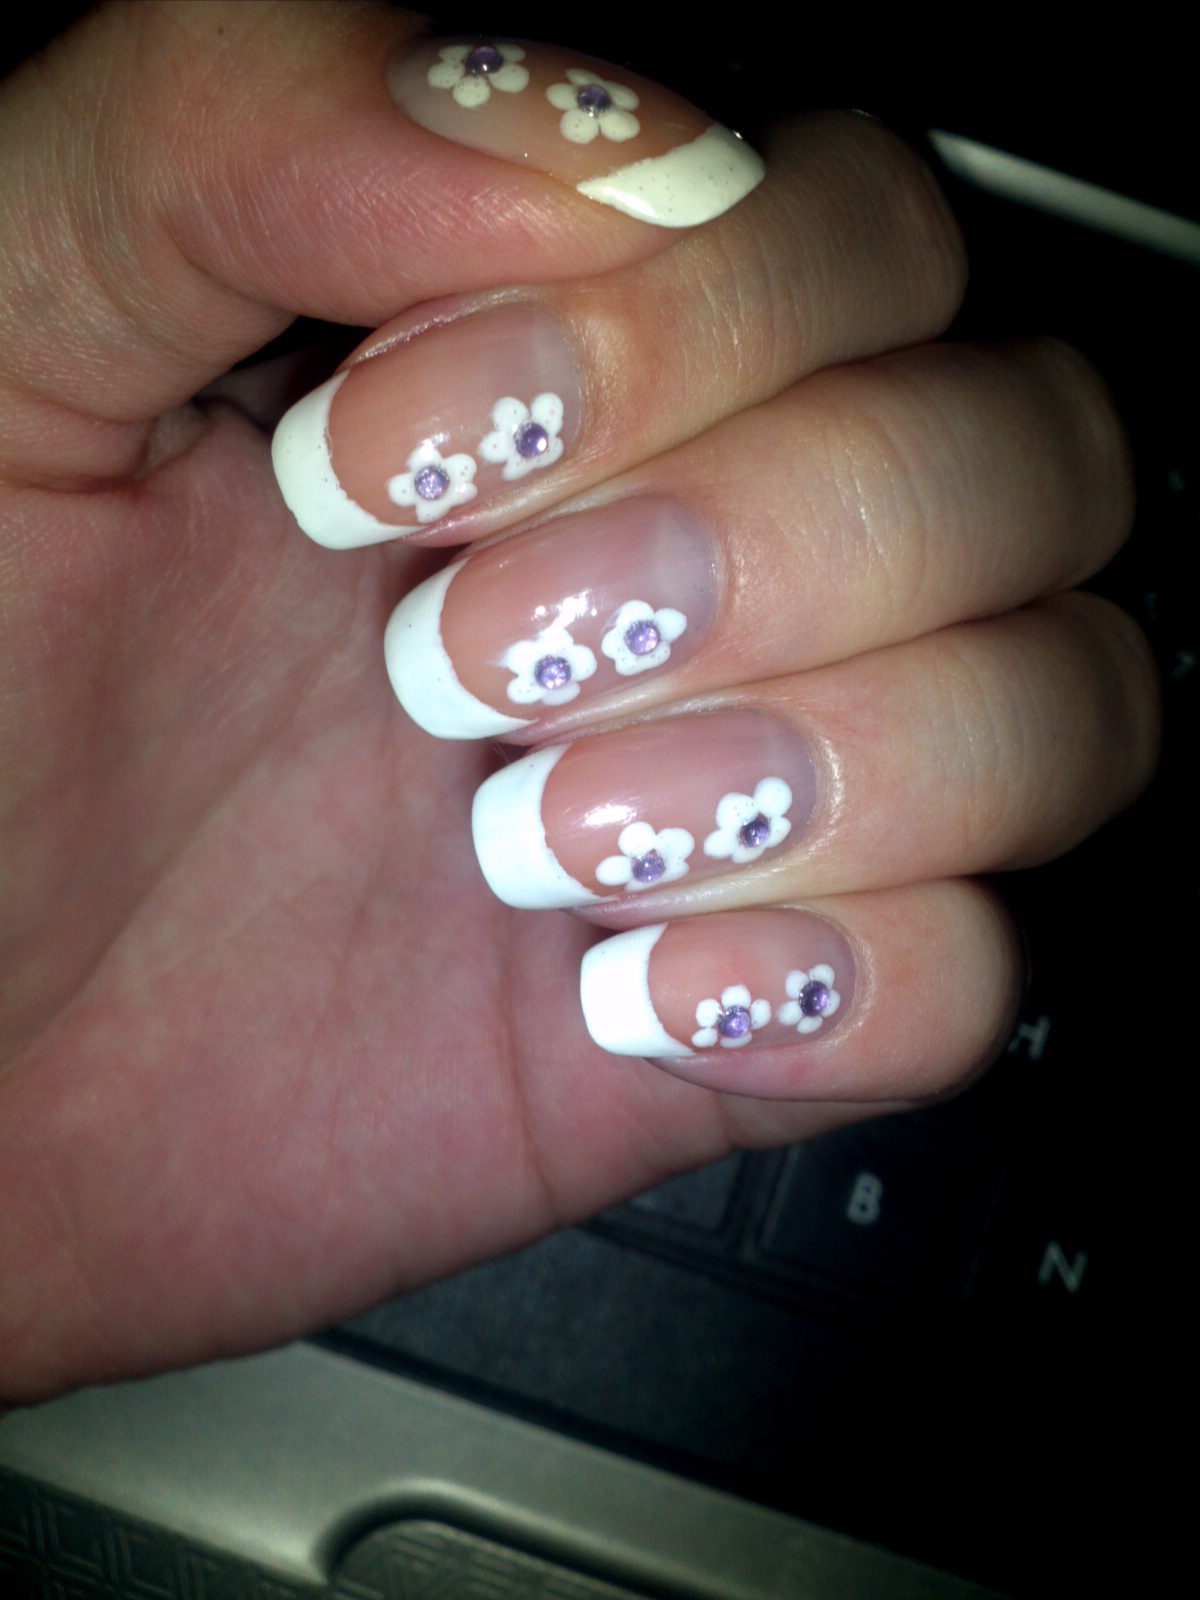 Juicy Nails Nail Art White French Tip With Flowers And Rhinestones